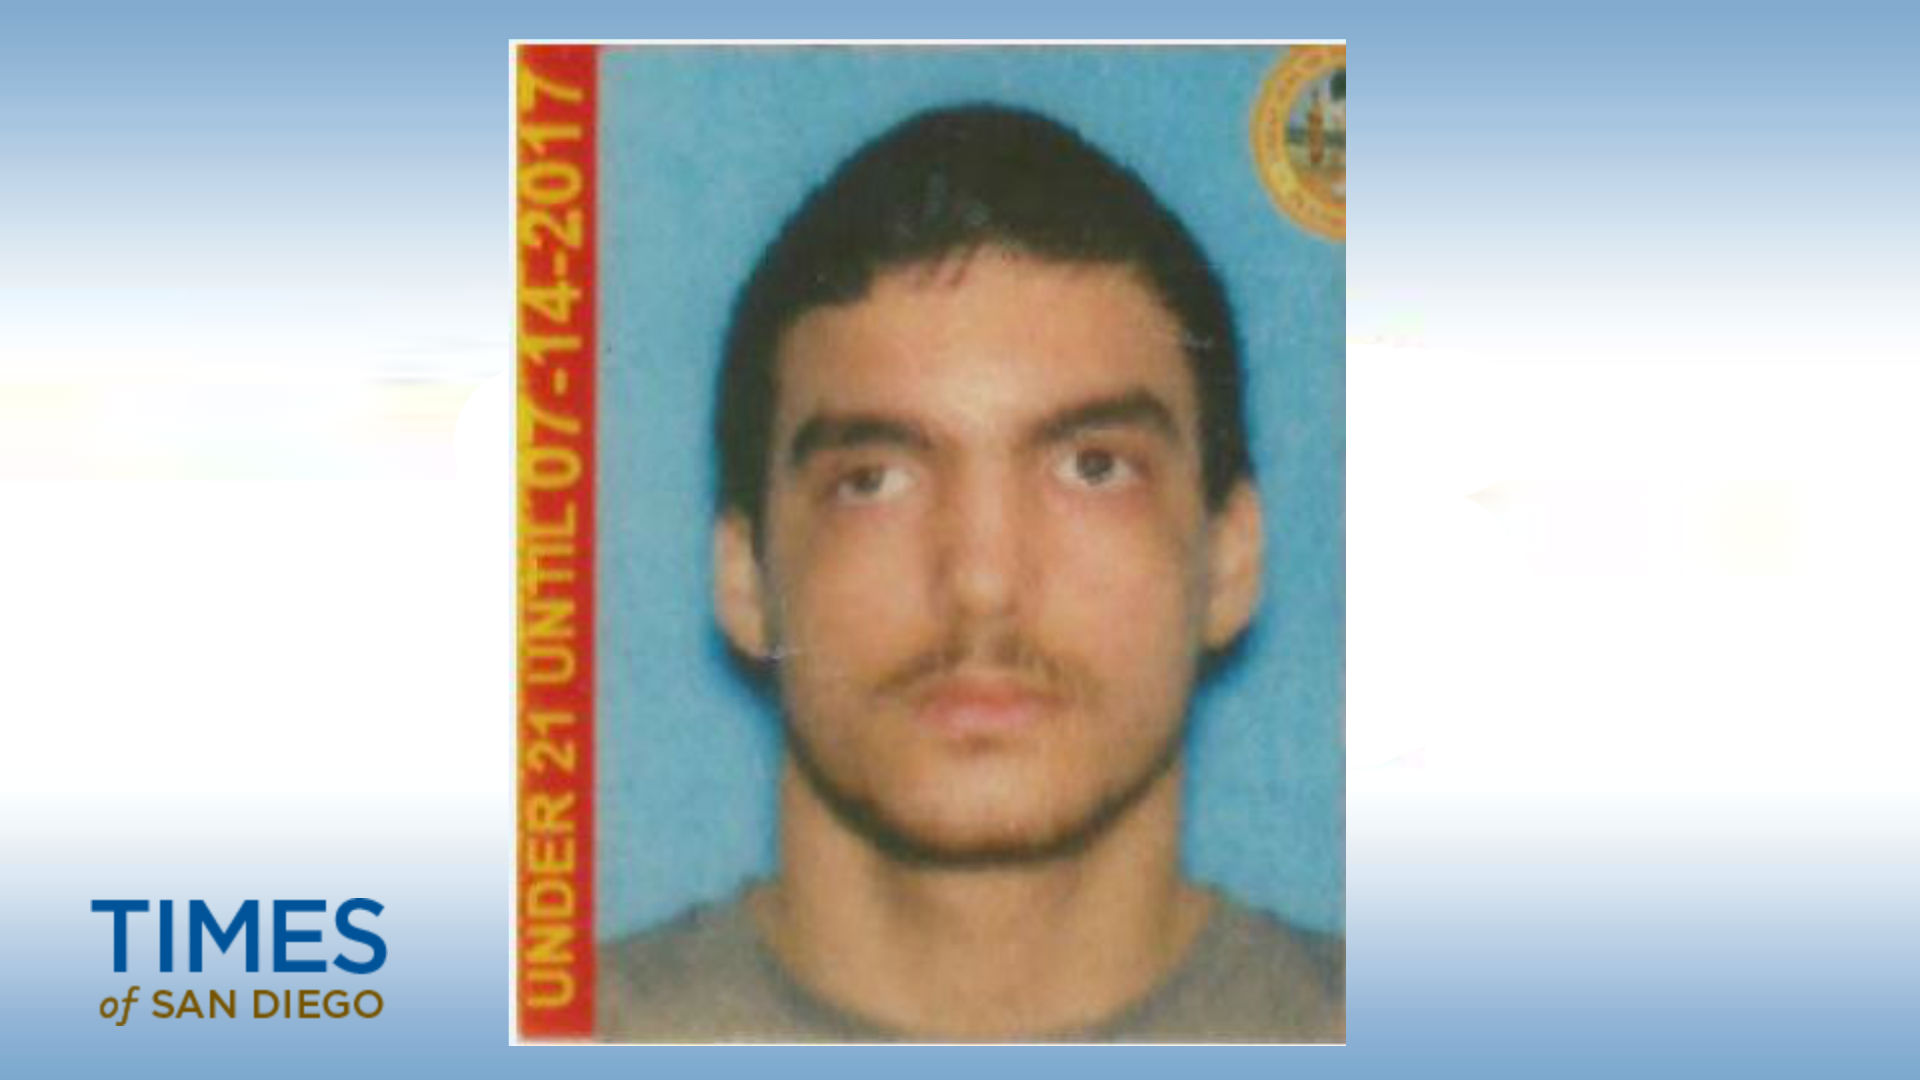 Gas Prices San Diego >> Police Asking for Help Searching for Missing Autistic Man - Times of San Diego